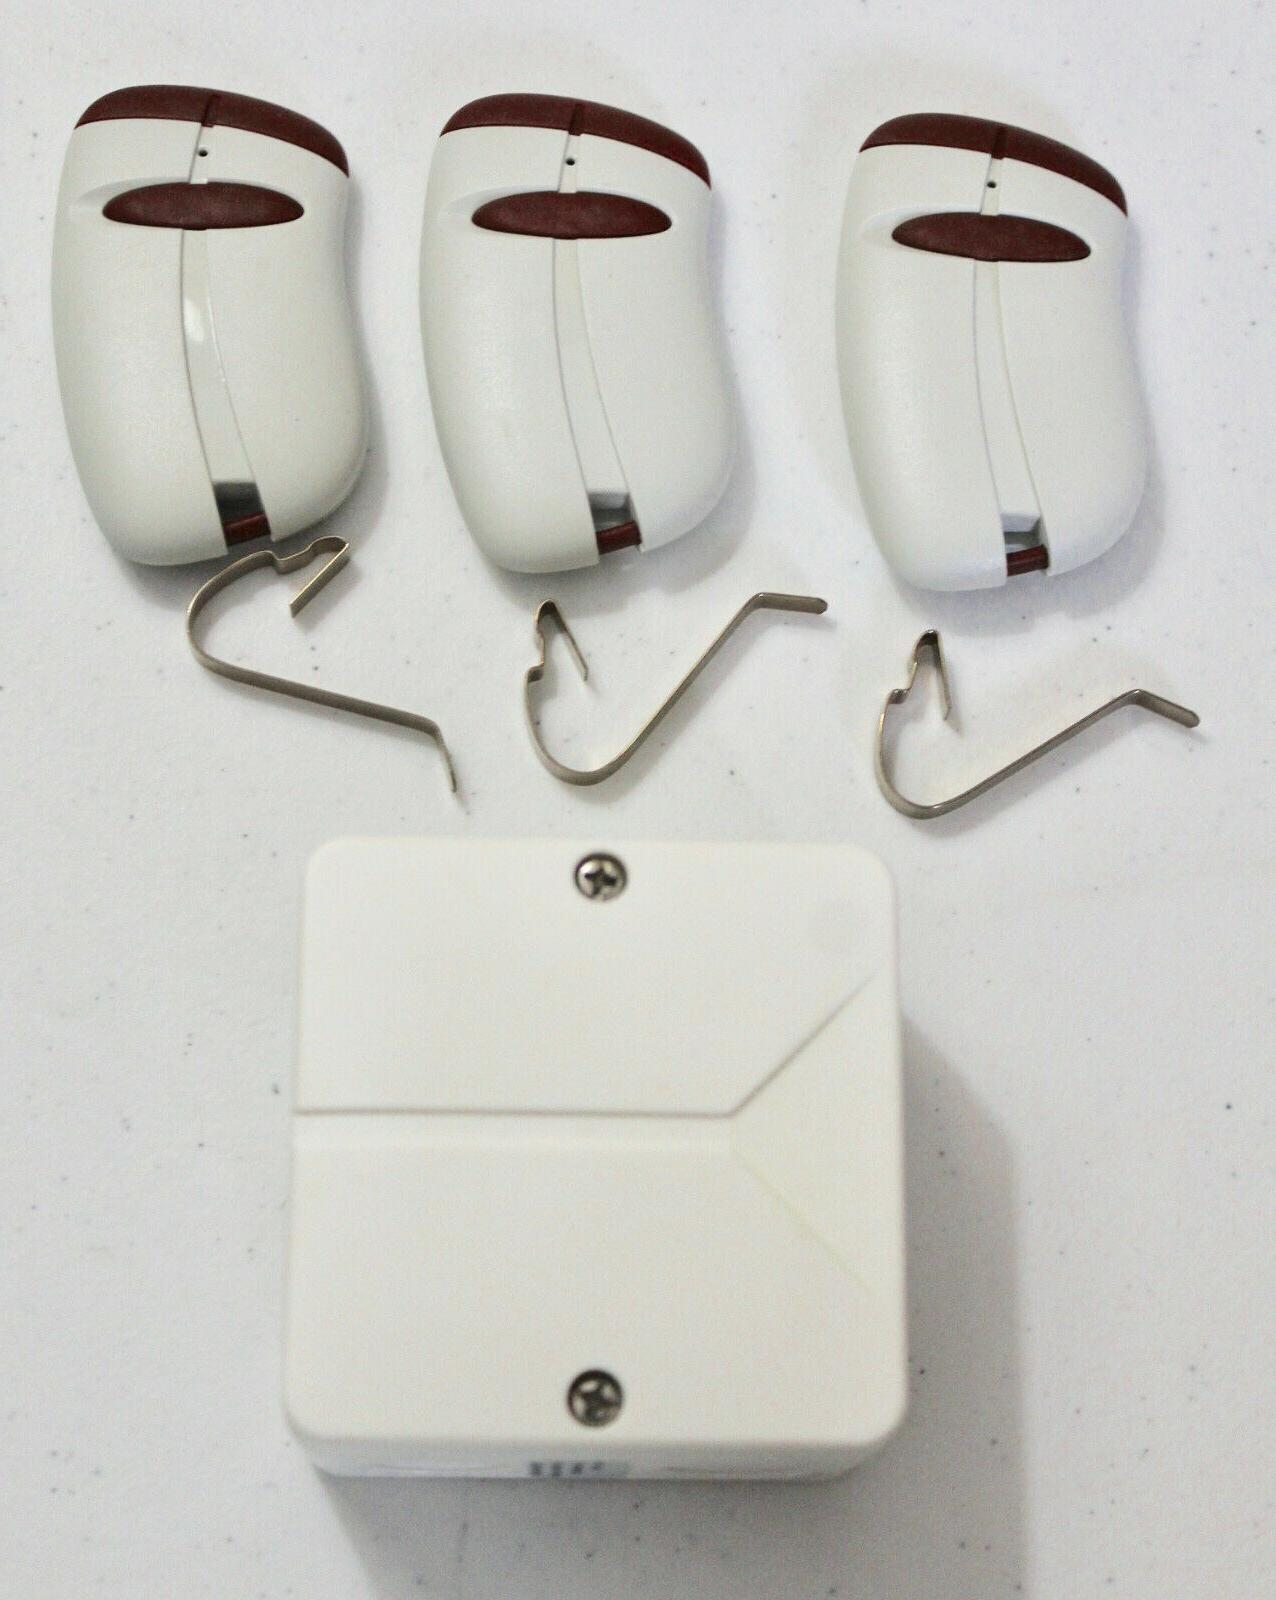 three 433tspw1v transmitters and one weatherproof receiver